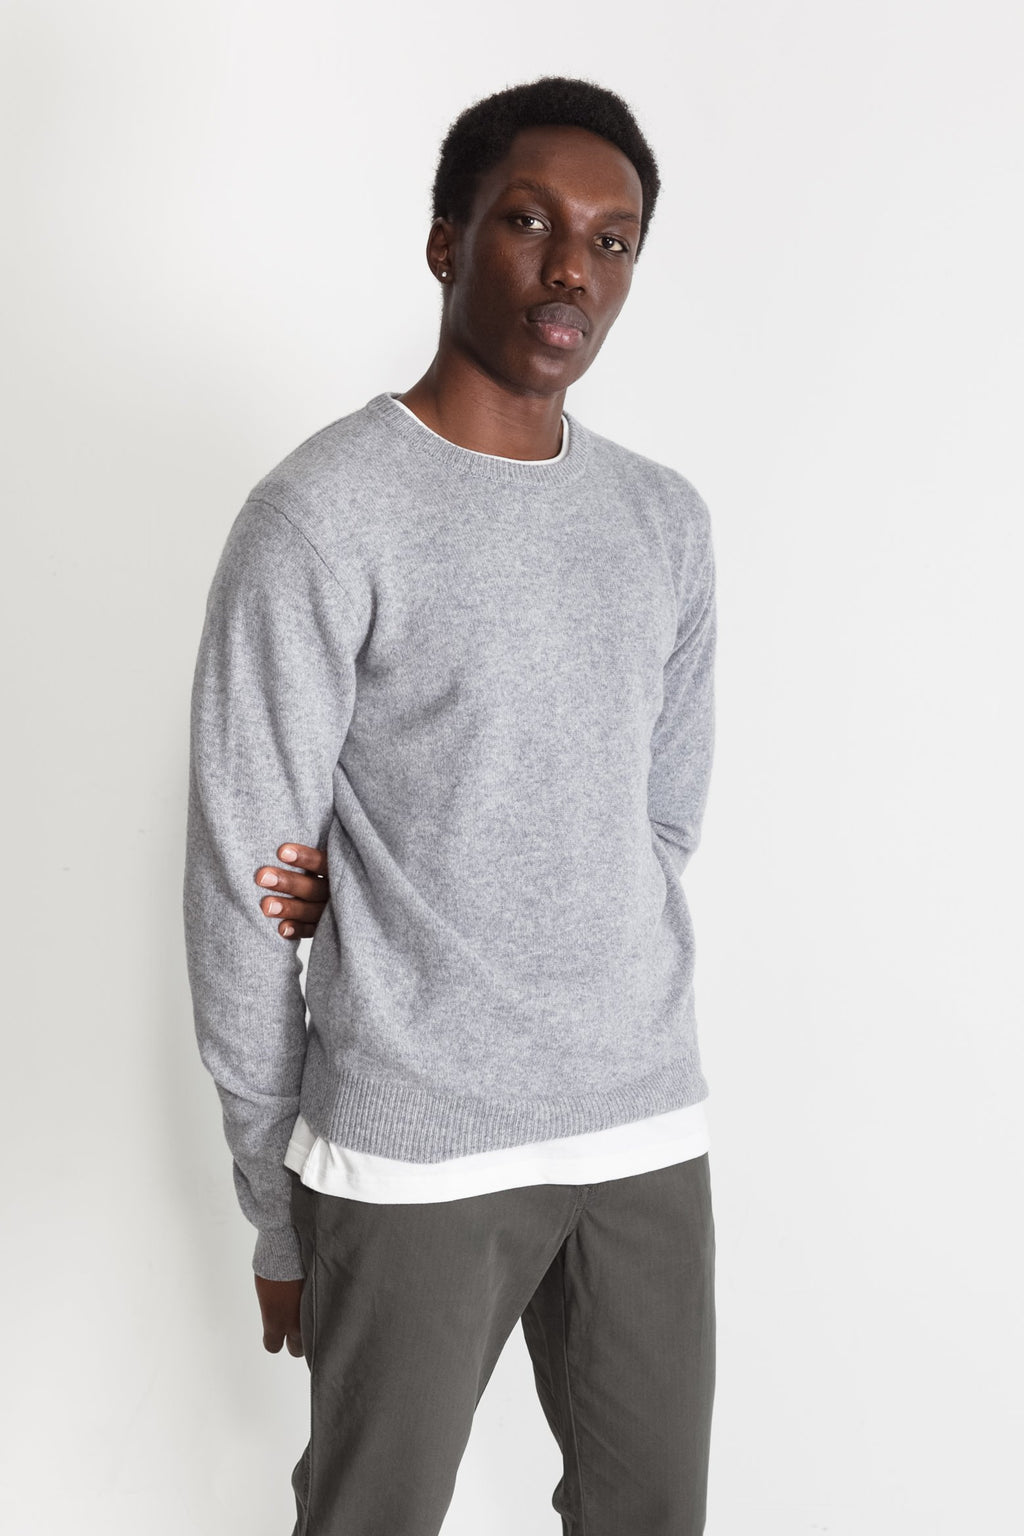 New Wool Crew Neck in Black 01